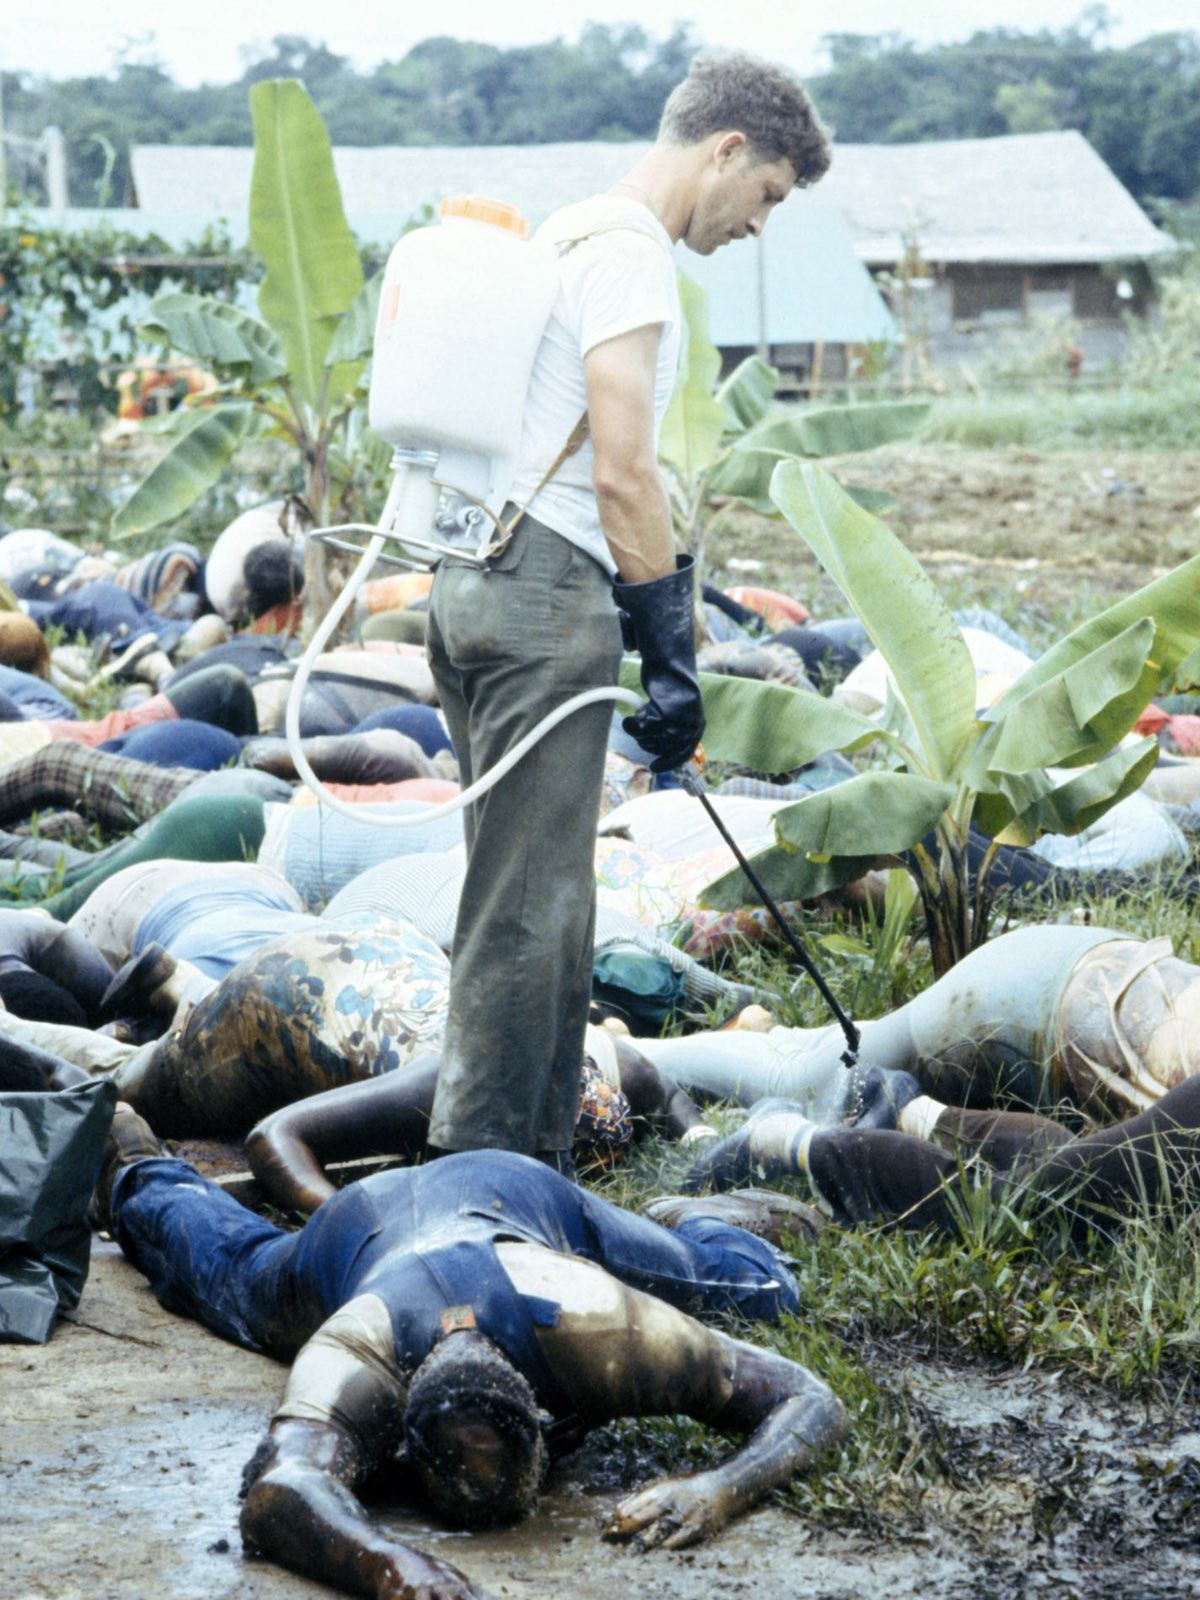 By the time US Troops arrived at Jonestown, the bodies were heavily decomposed (credit: US Army)